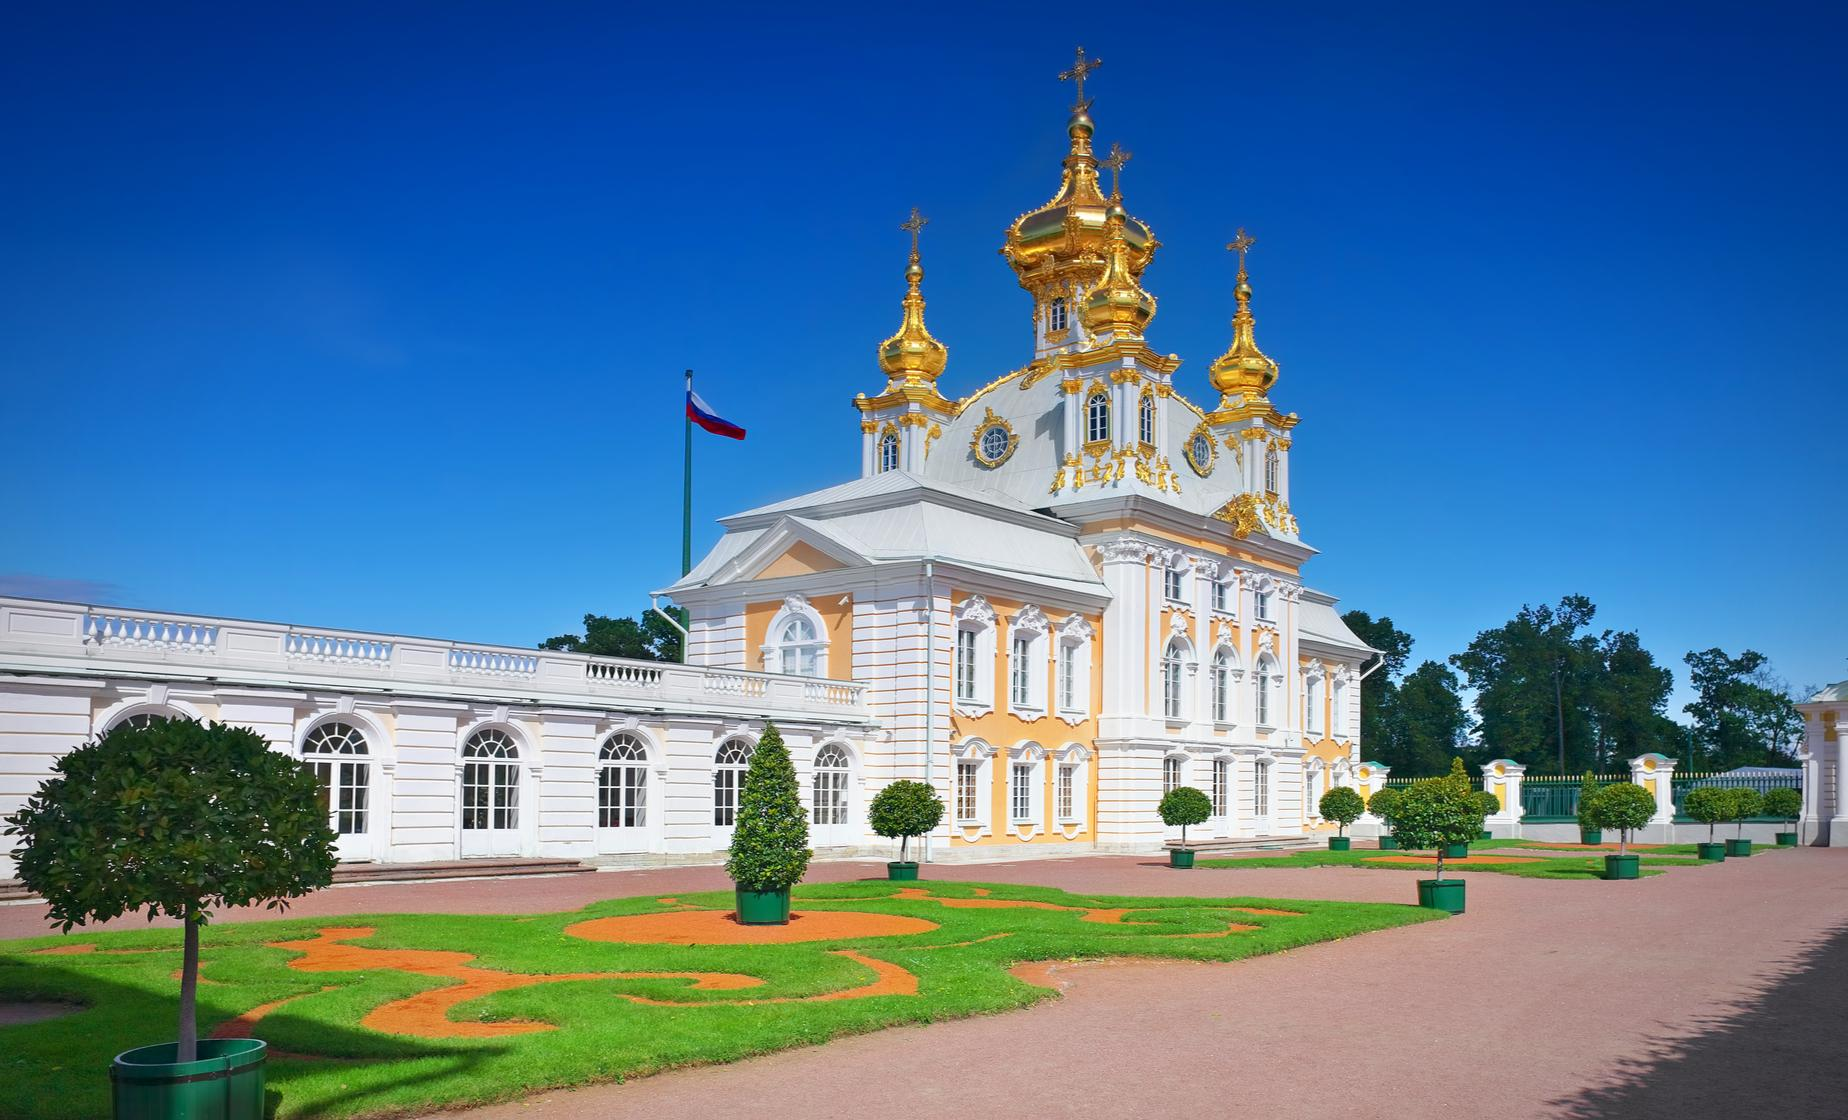 Private Peterhof - Russian Versailles